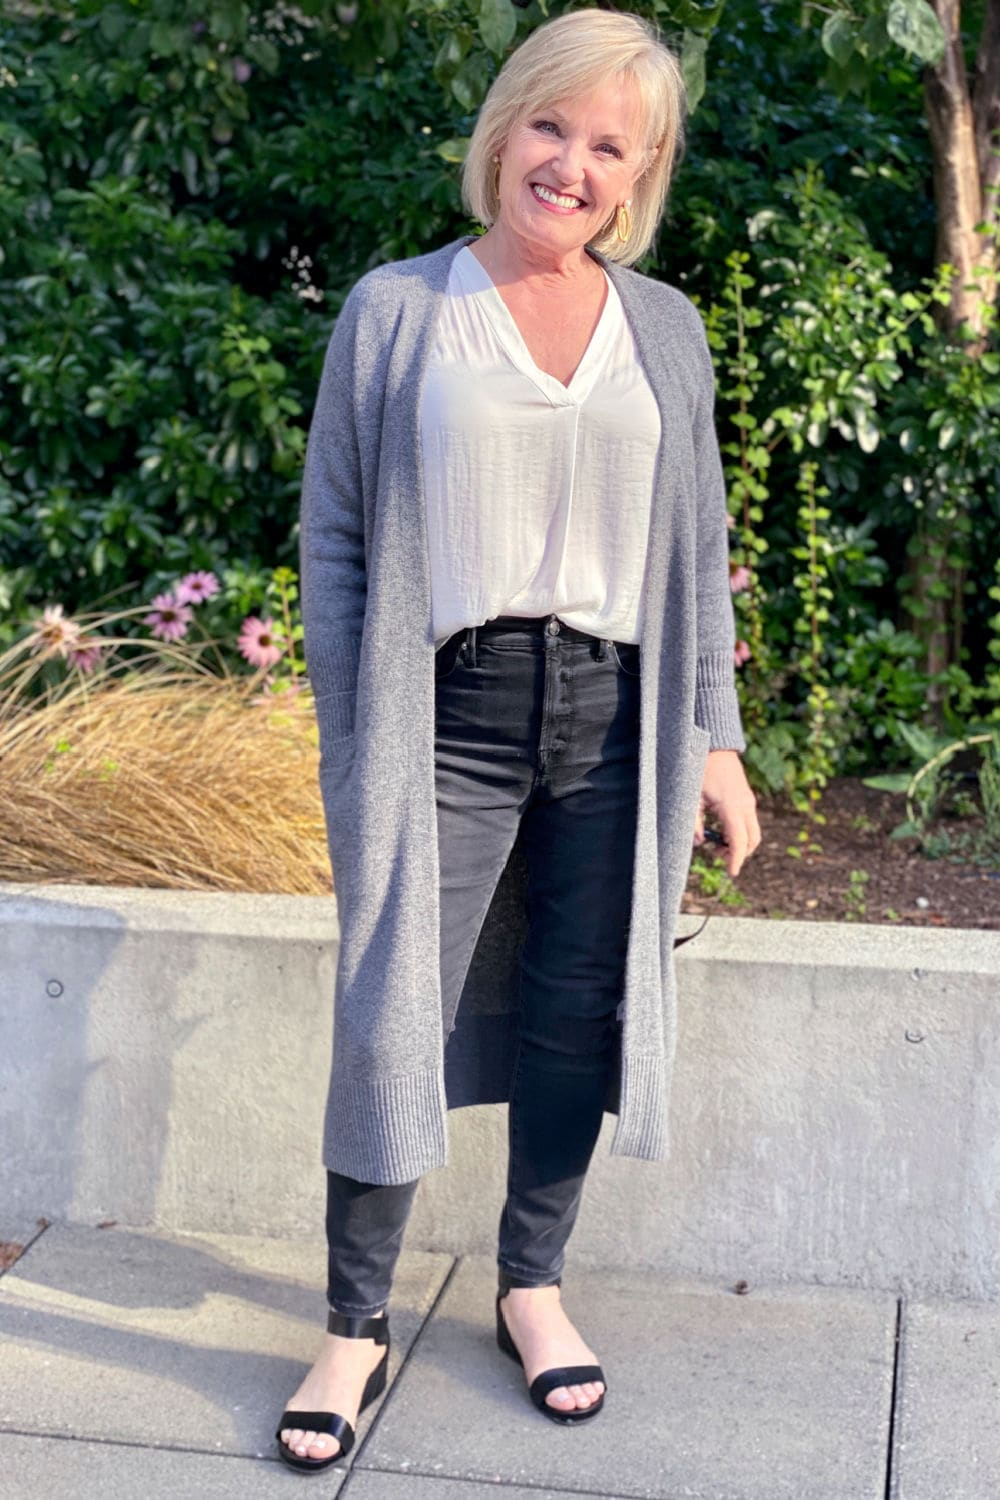 jennifer Connolly wearing a casual outfit from the 2020 nsale of long gray sweater over good american jeans